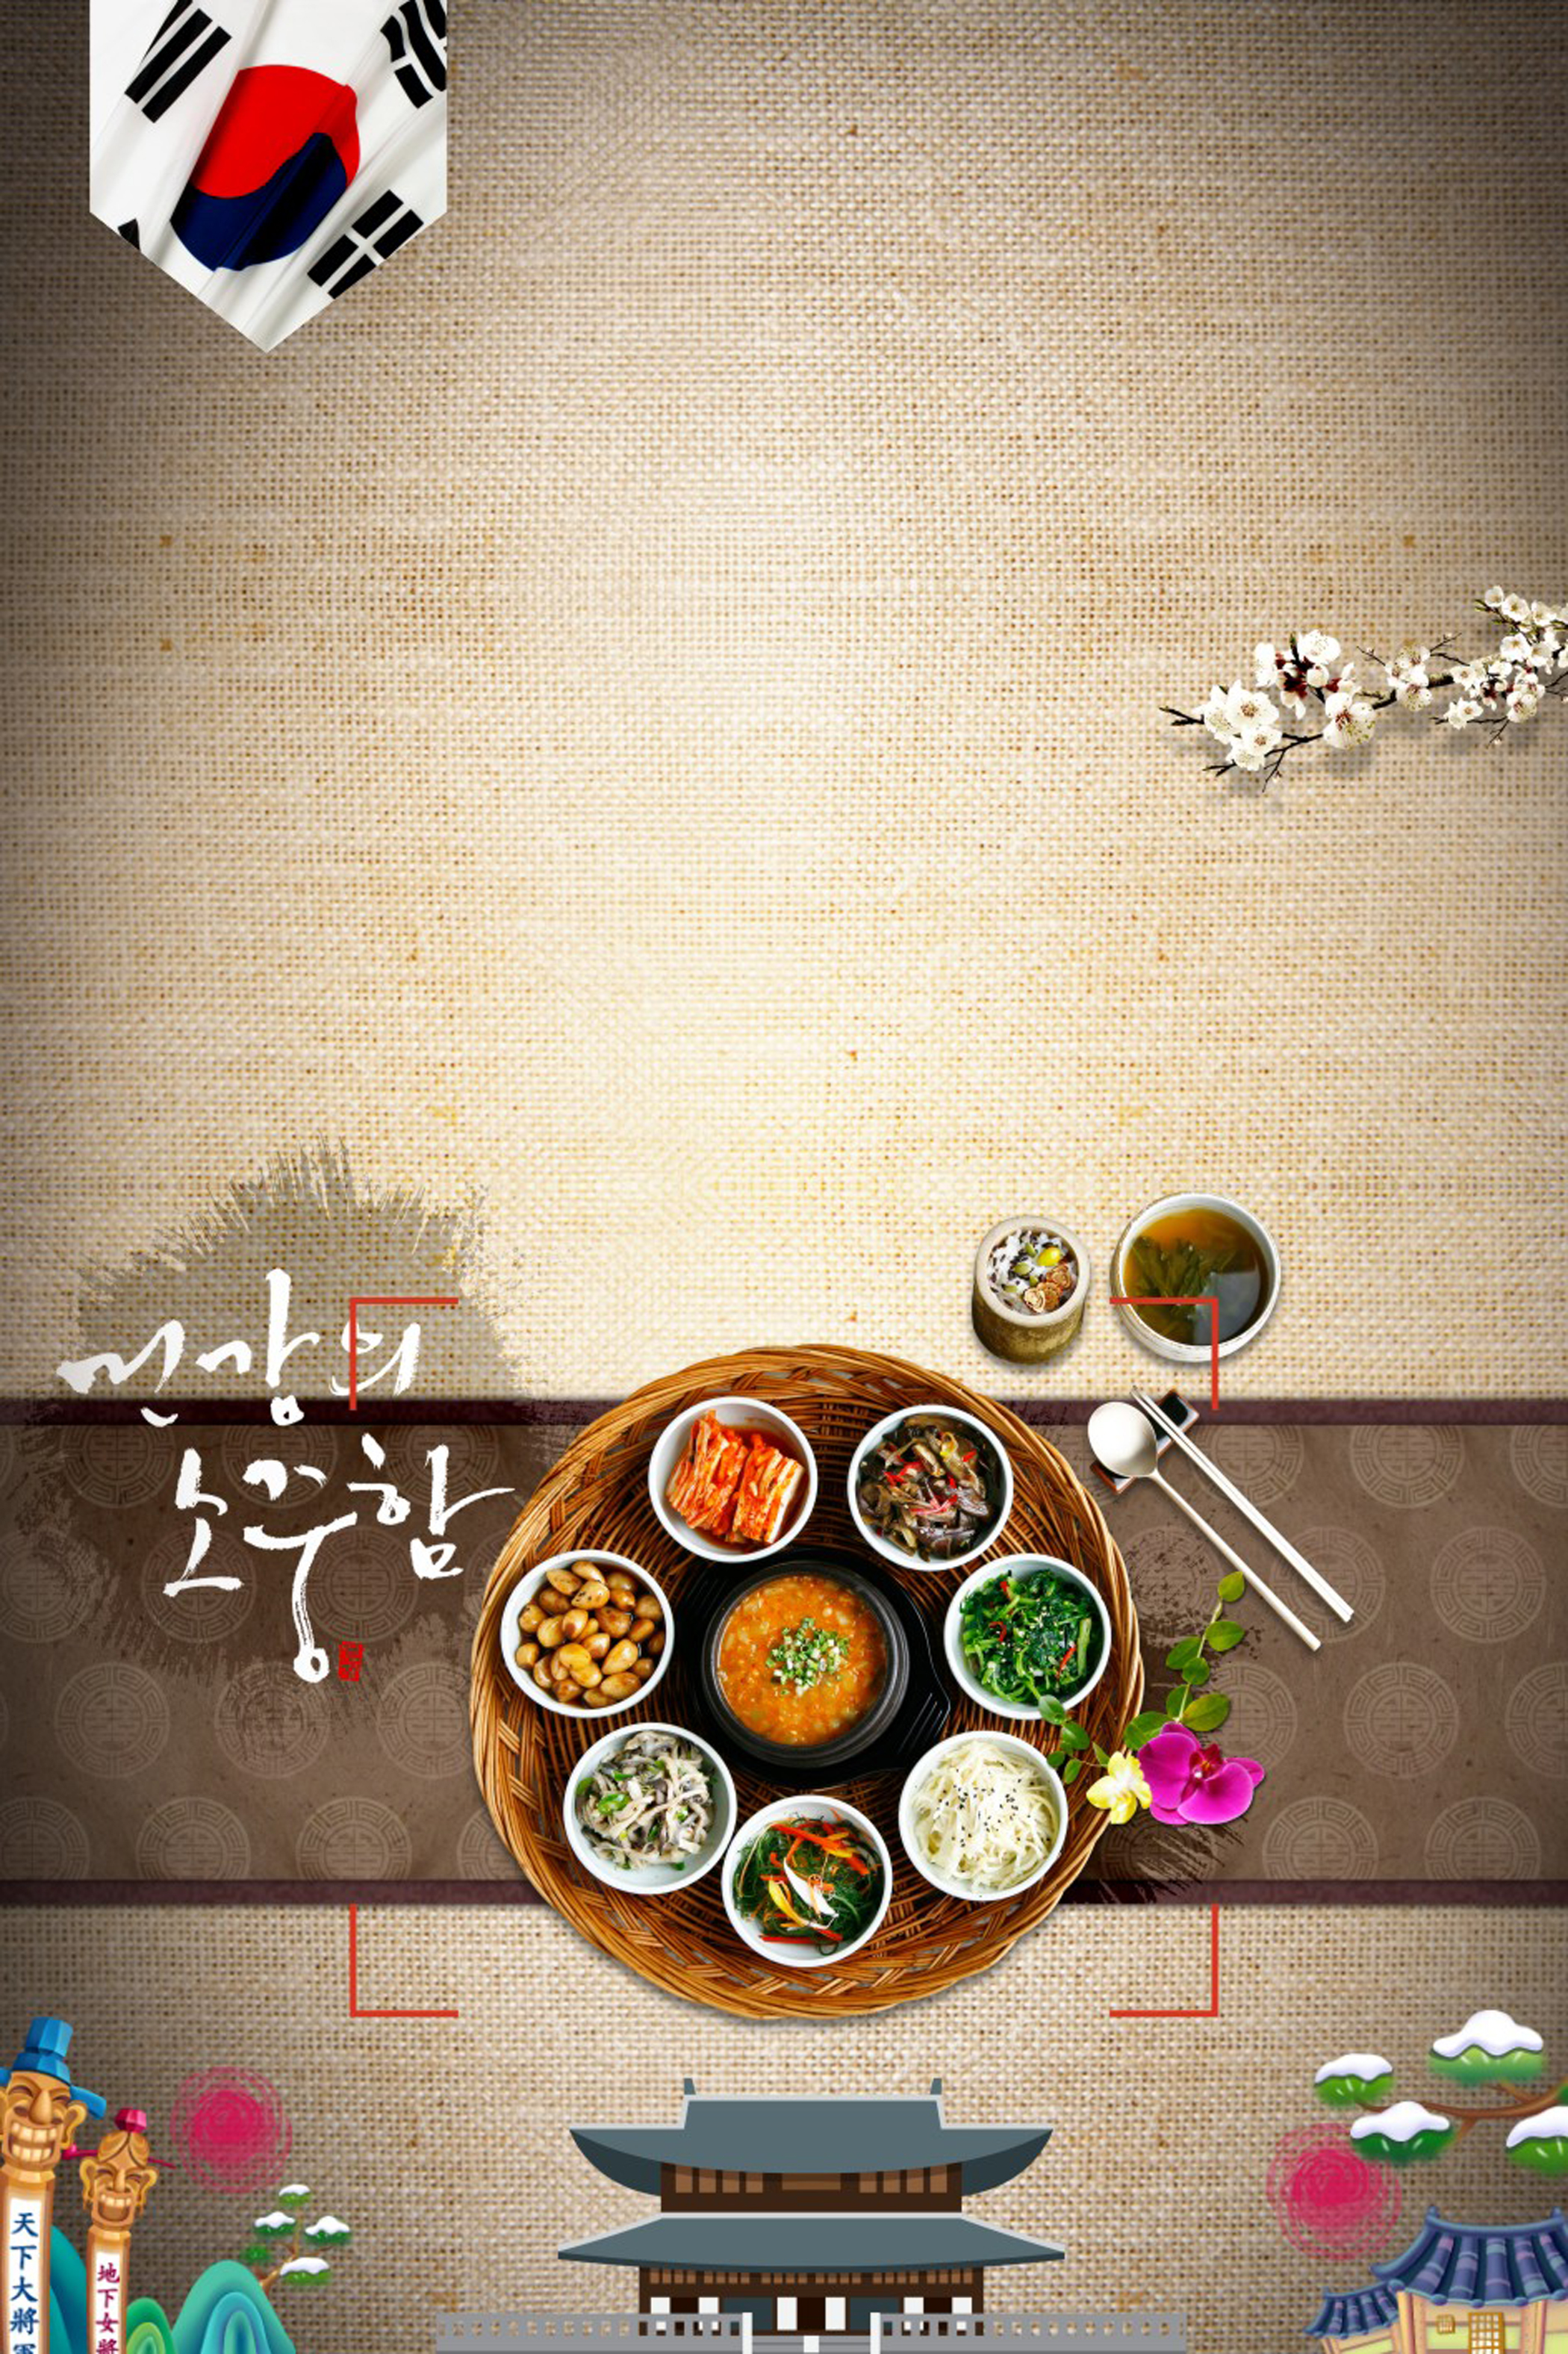 Free Winter Animal Wallpaper Korean Cuisine Posters Korean Food Poster Background